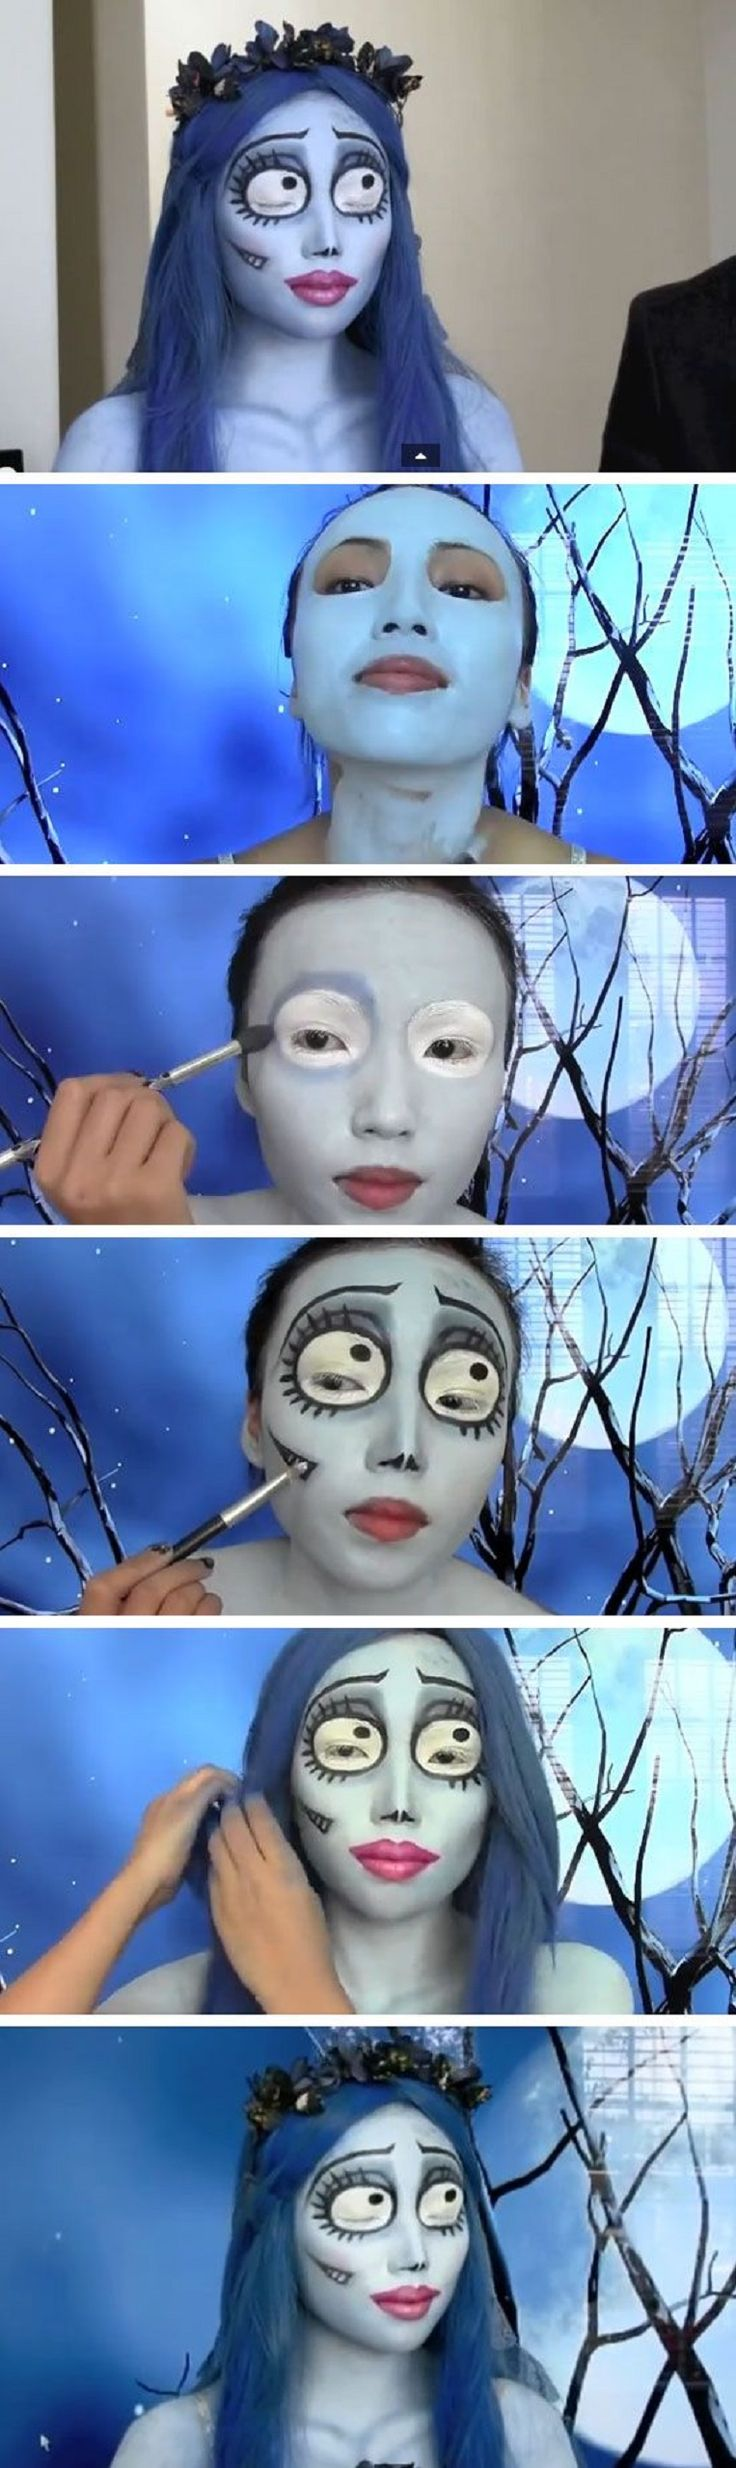 Corpse Bride Costume Tutorial - 12 Best DIY Halloween Makeup Tutorials - GleamItUp